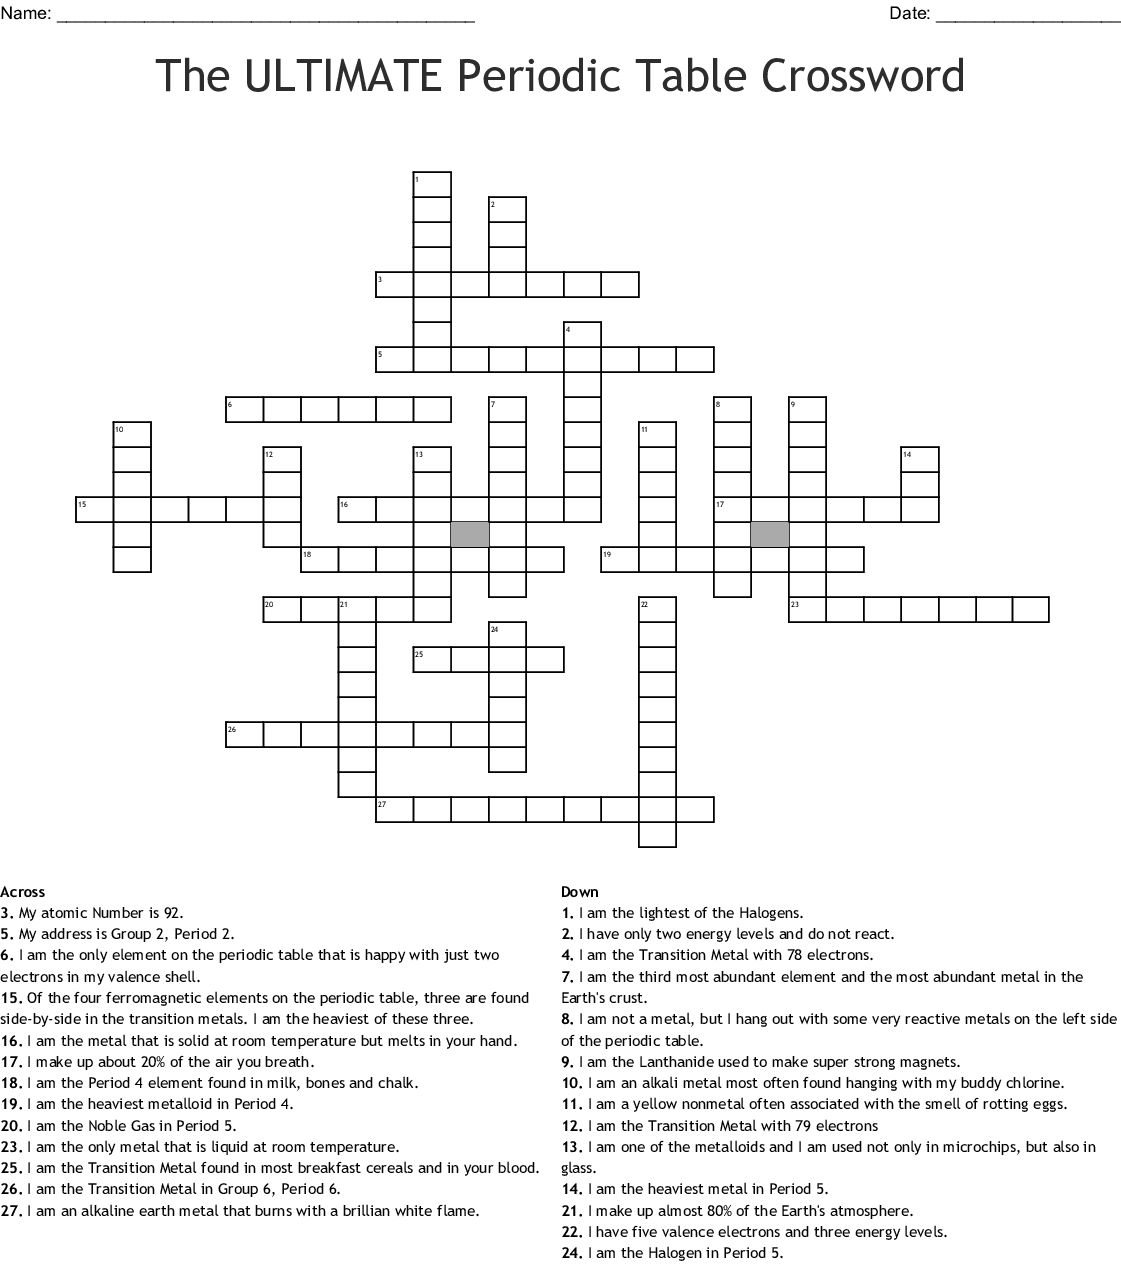 Chemistry Crossword Puzzle